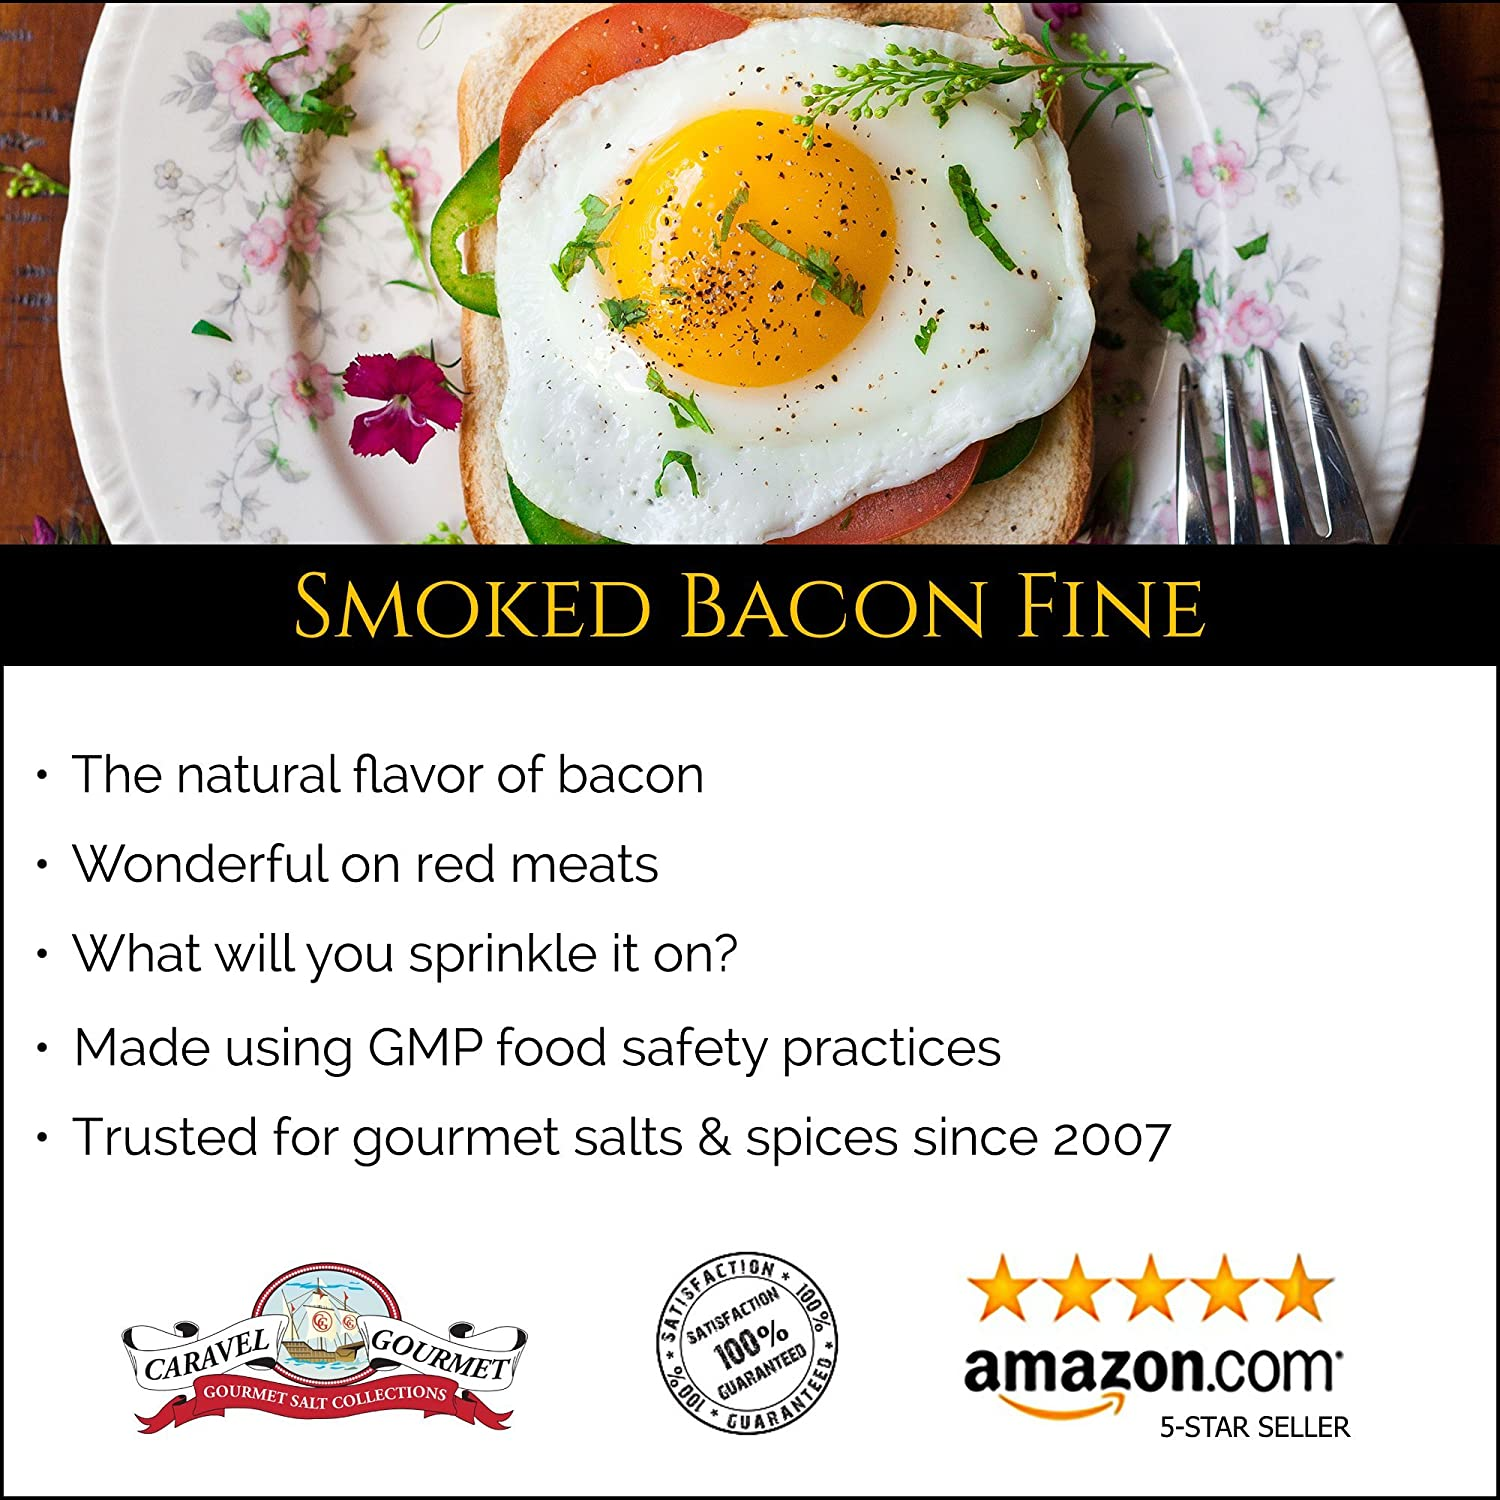 Amazon.com : Smoked Bacon Fine Sea Salt 1 lb. Resealable Bag - All-Natural Bacon Sea Salt Slowly Smoked for Perfect Smoky Flavor - No Gluten, No MSG, ...